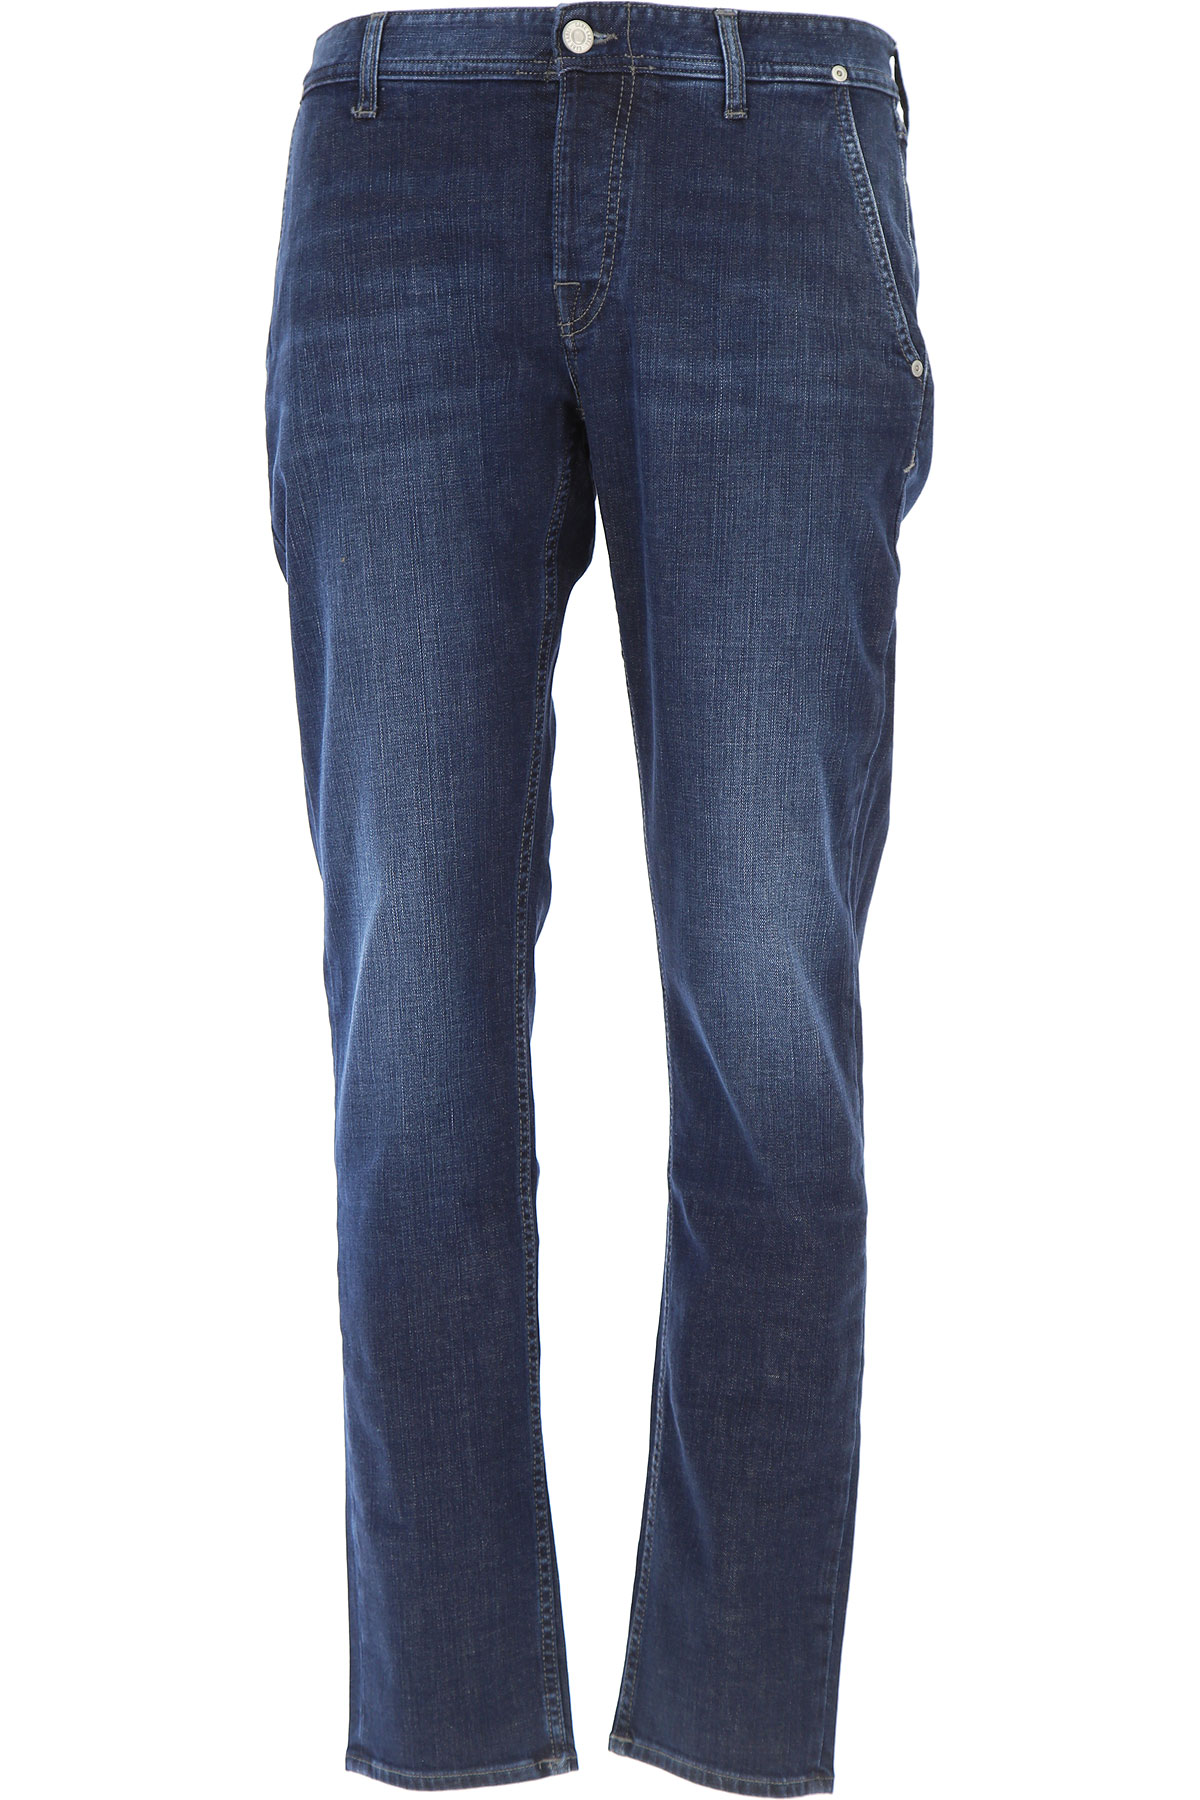 Care Label Jeans On Sale, Blue Denim, Cotton, 2017, Waist 30 inches - Lenght 32 in Waist 31 inches - Lenght 32 in Waist 32 inches - Lenght 32 in Waist 33 inches - Lenght 32 in Waist 34 inches - Lenght